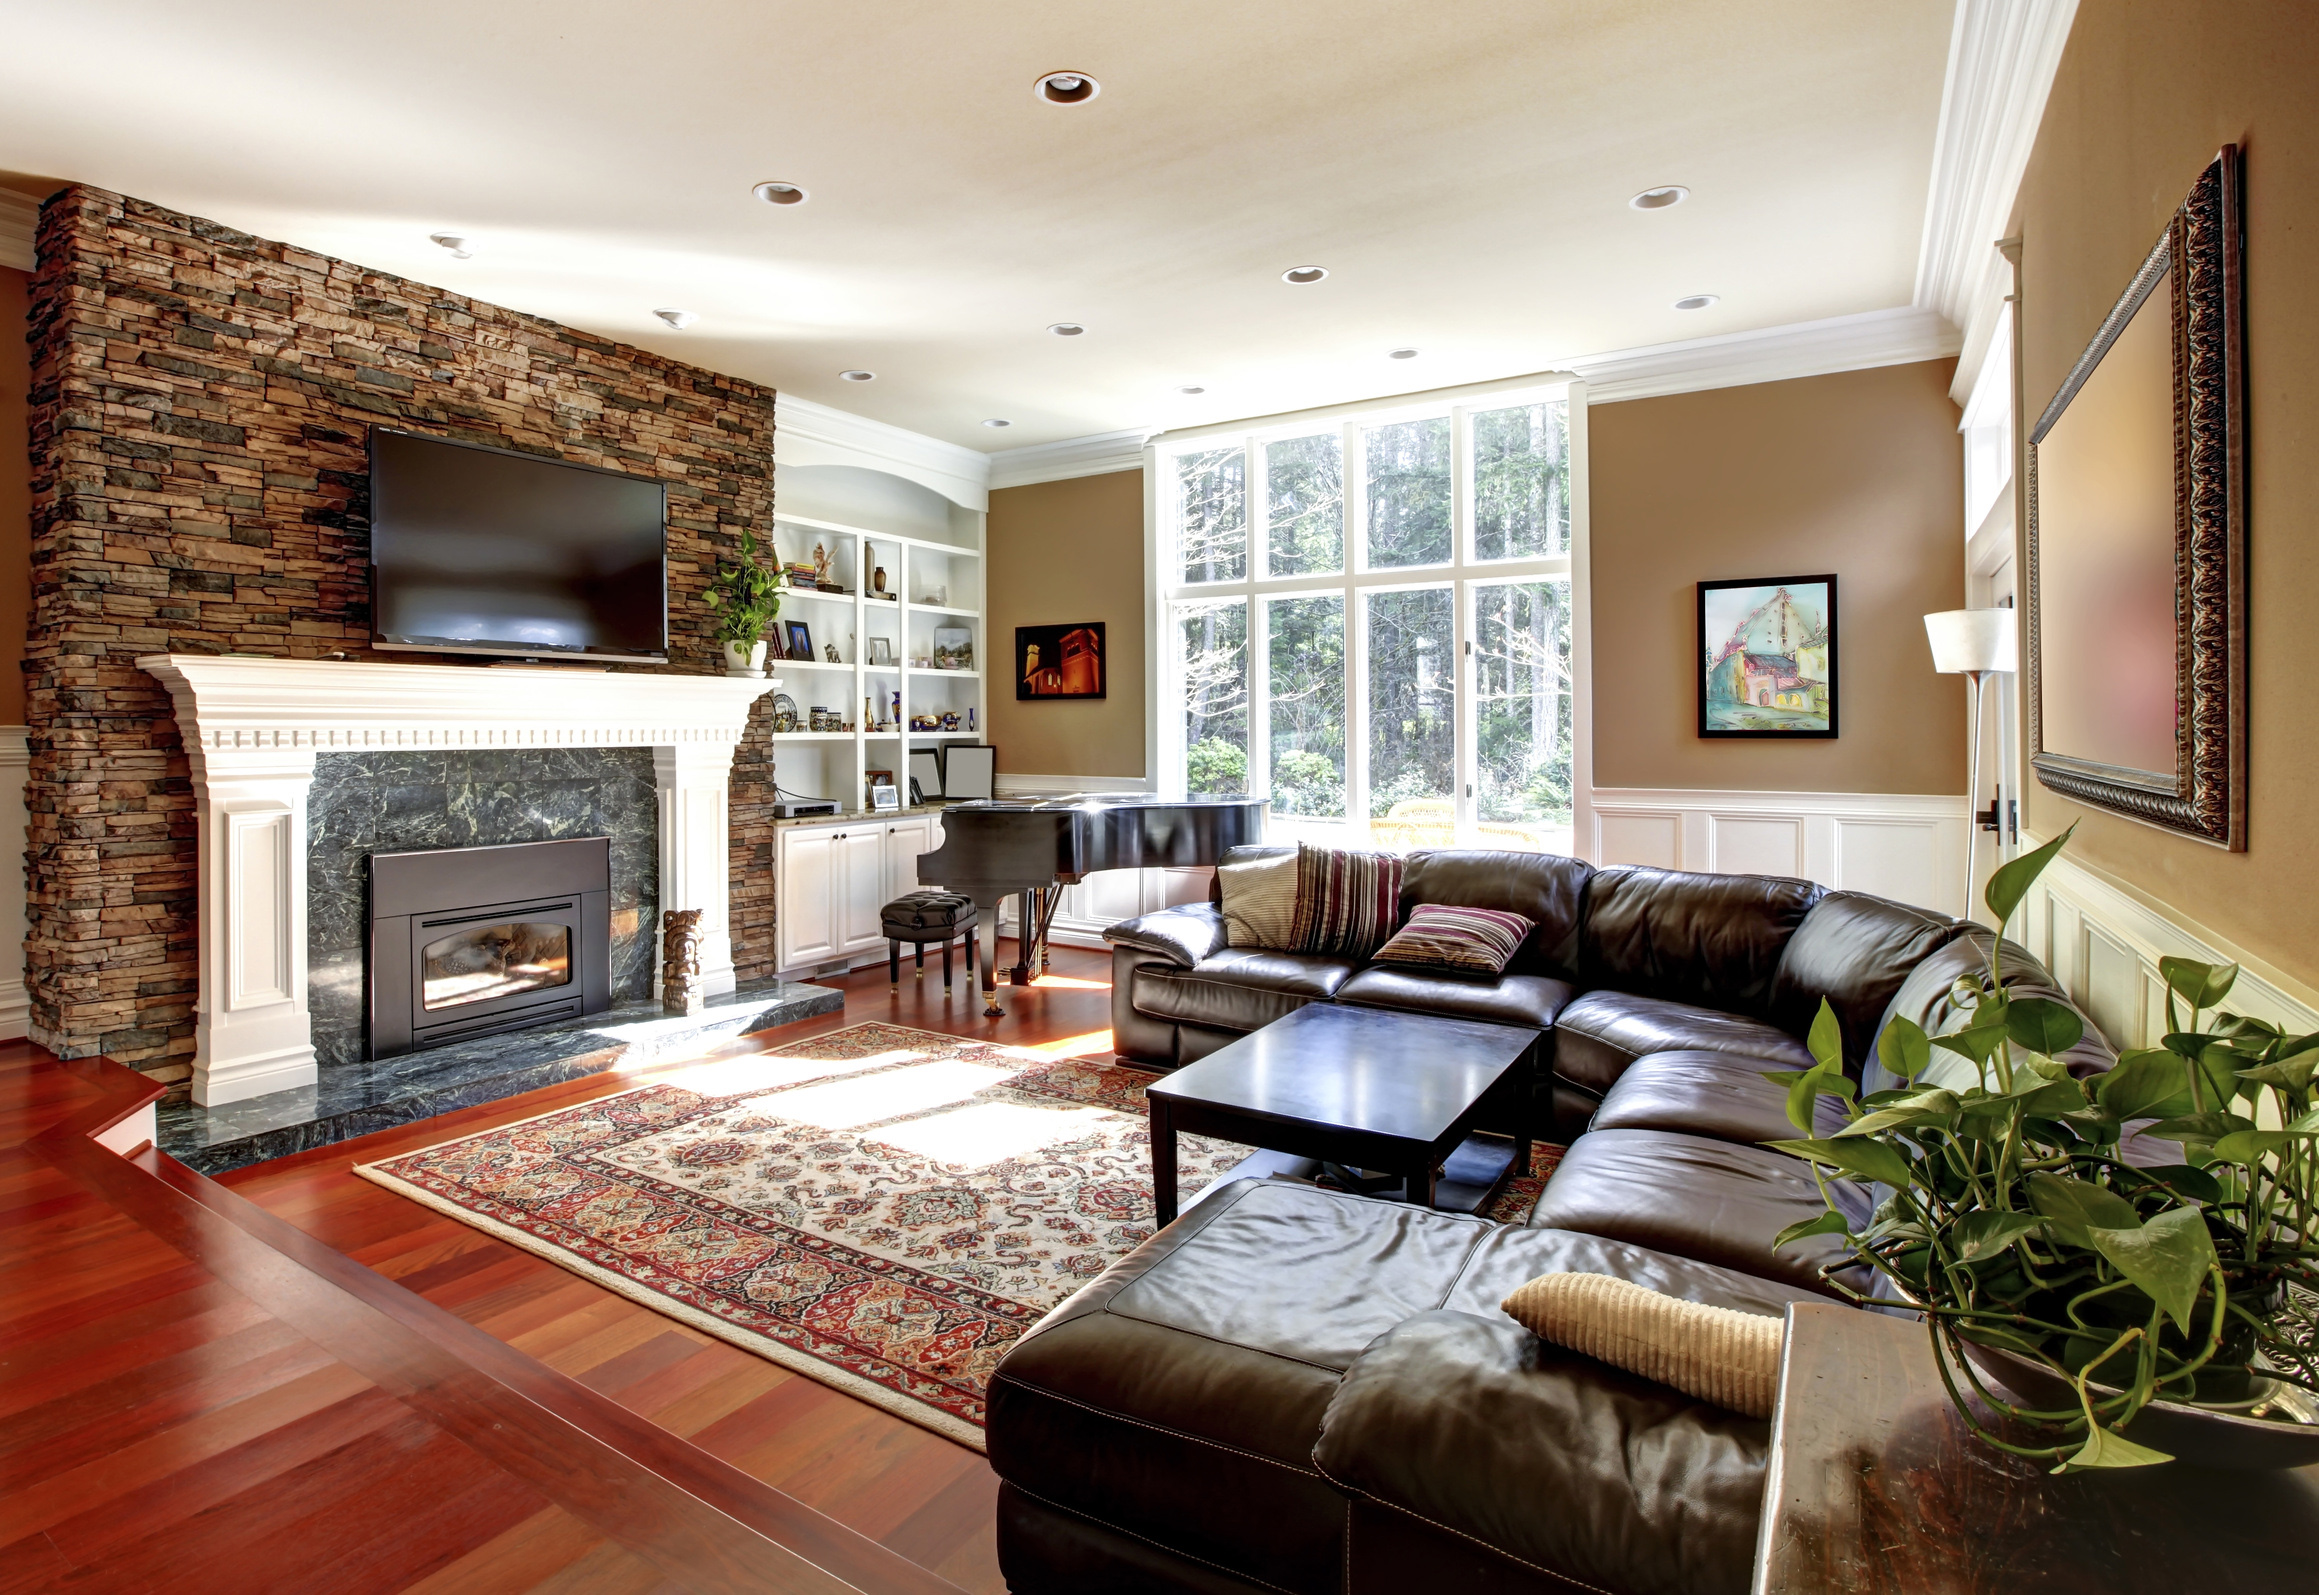 How to stage a home to sell - Luxury Living Room With Stobe Fireplace And Leather Sofas